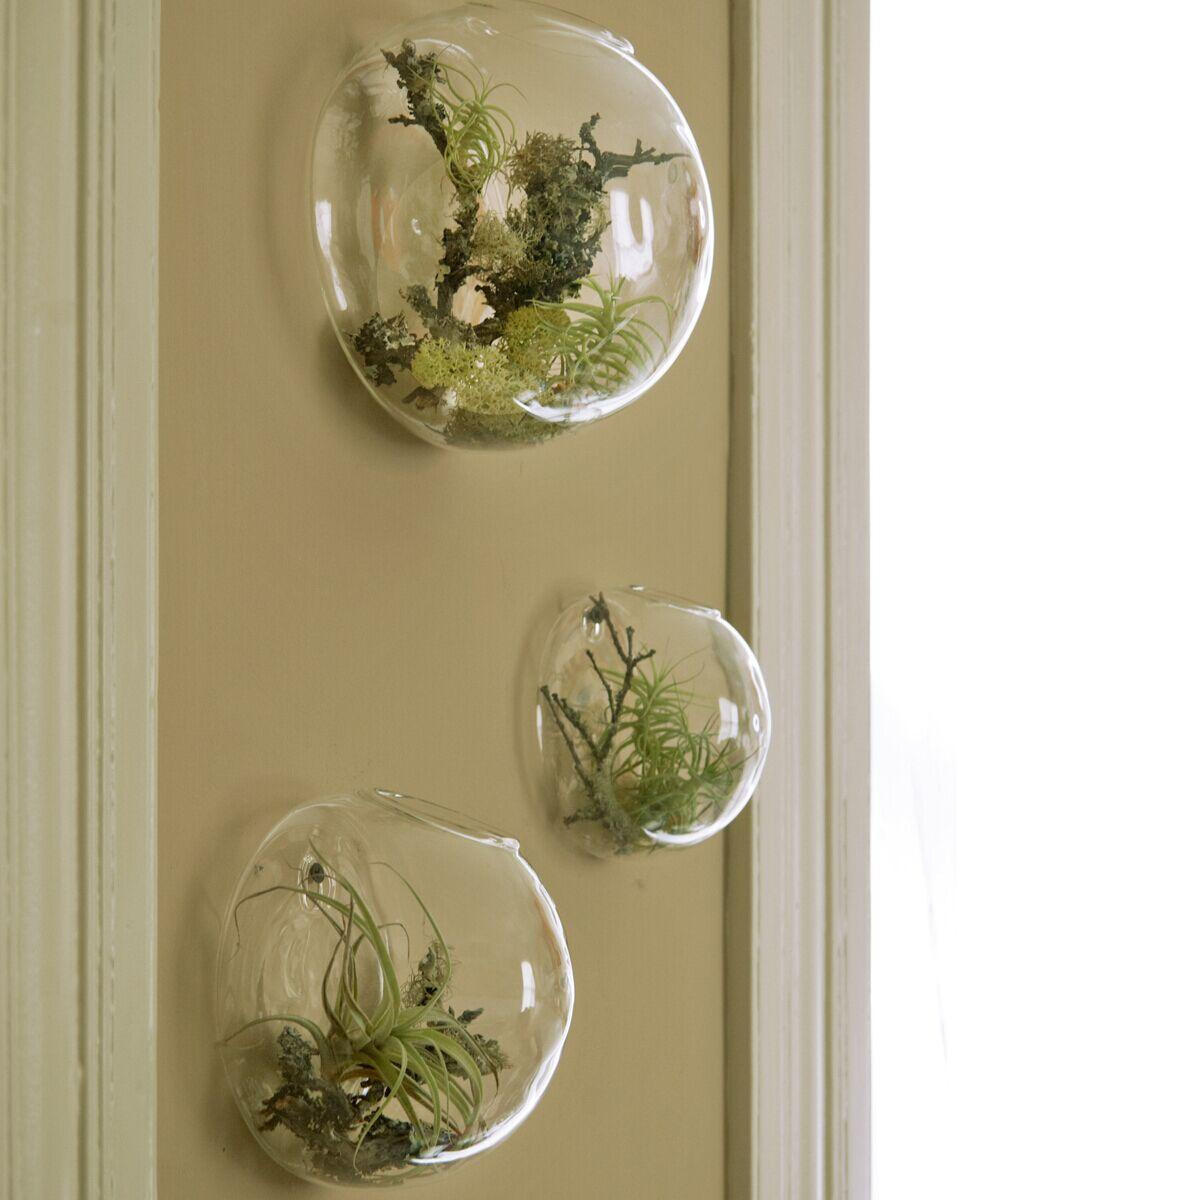 Flower Vase Online India Of Wall Bubble Terrariums Glass Wall Vase for Flowers Indoor Plants within Wall Bubble Terrariums Glass Wall Vase for Flowers Indoor Plants Wall Mounted Planter for Succulents Air Plant Holders Home Decor Inexpensive Floor Vases